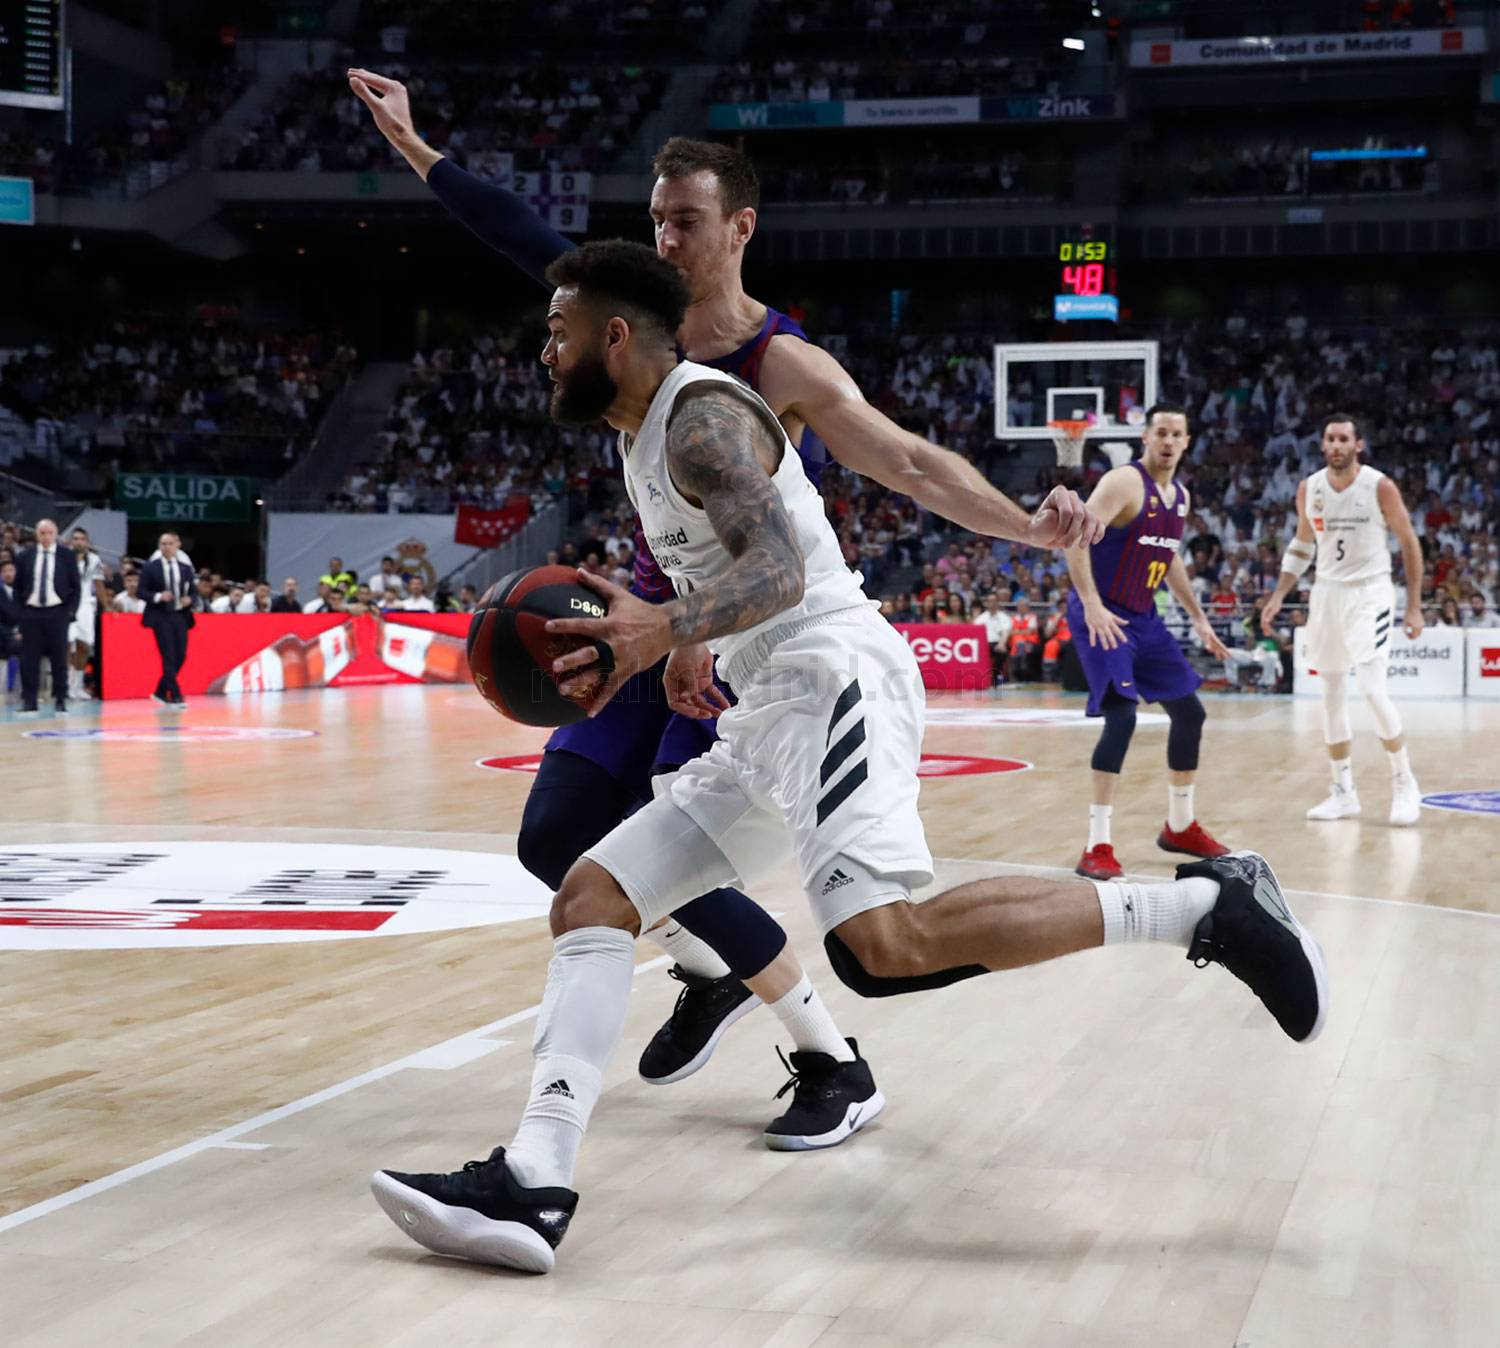 Real Madrid - Real Madrid - Barcelona Lassa - 15-06-2019